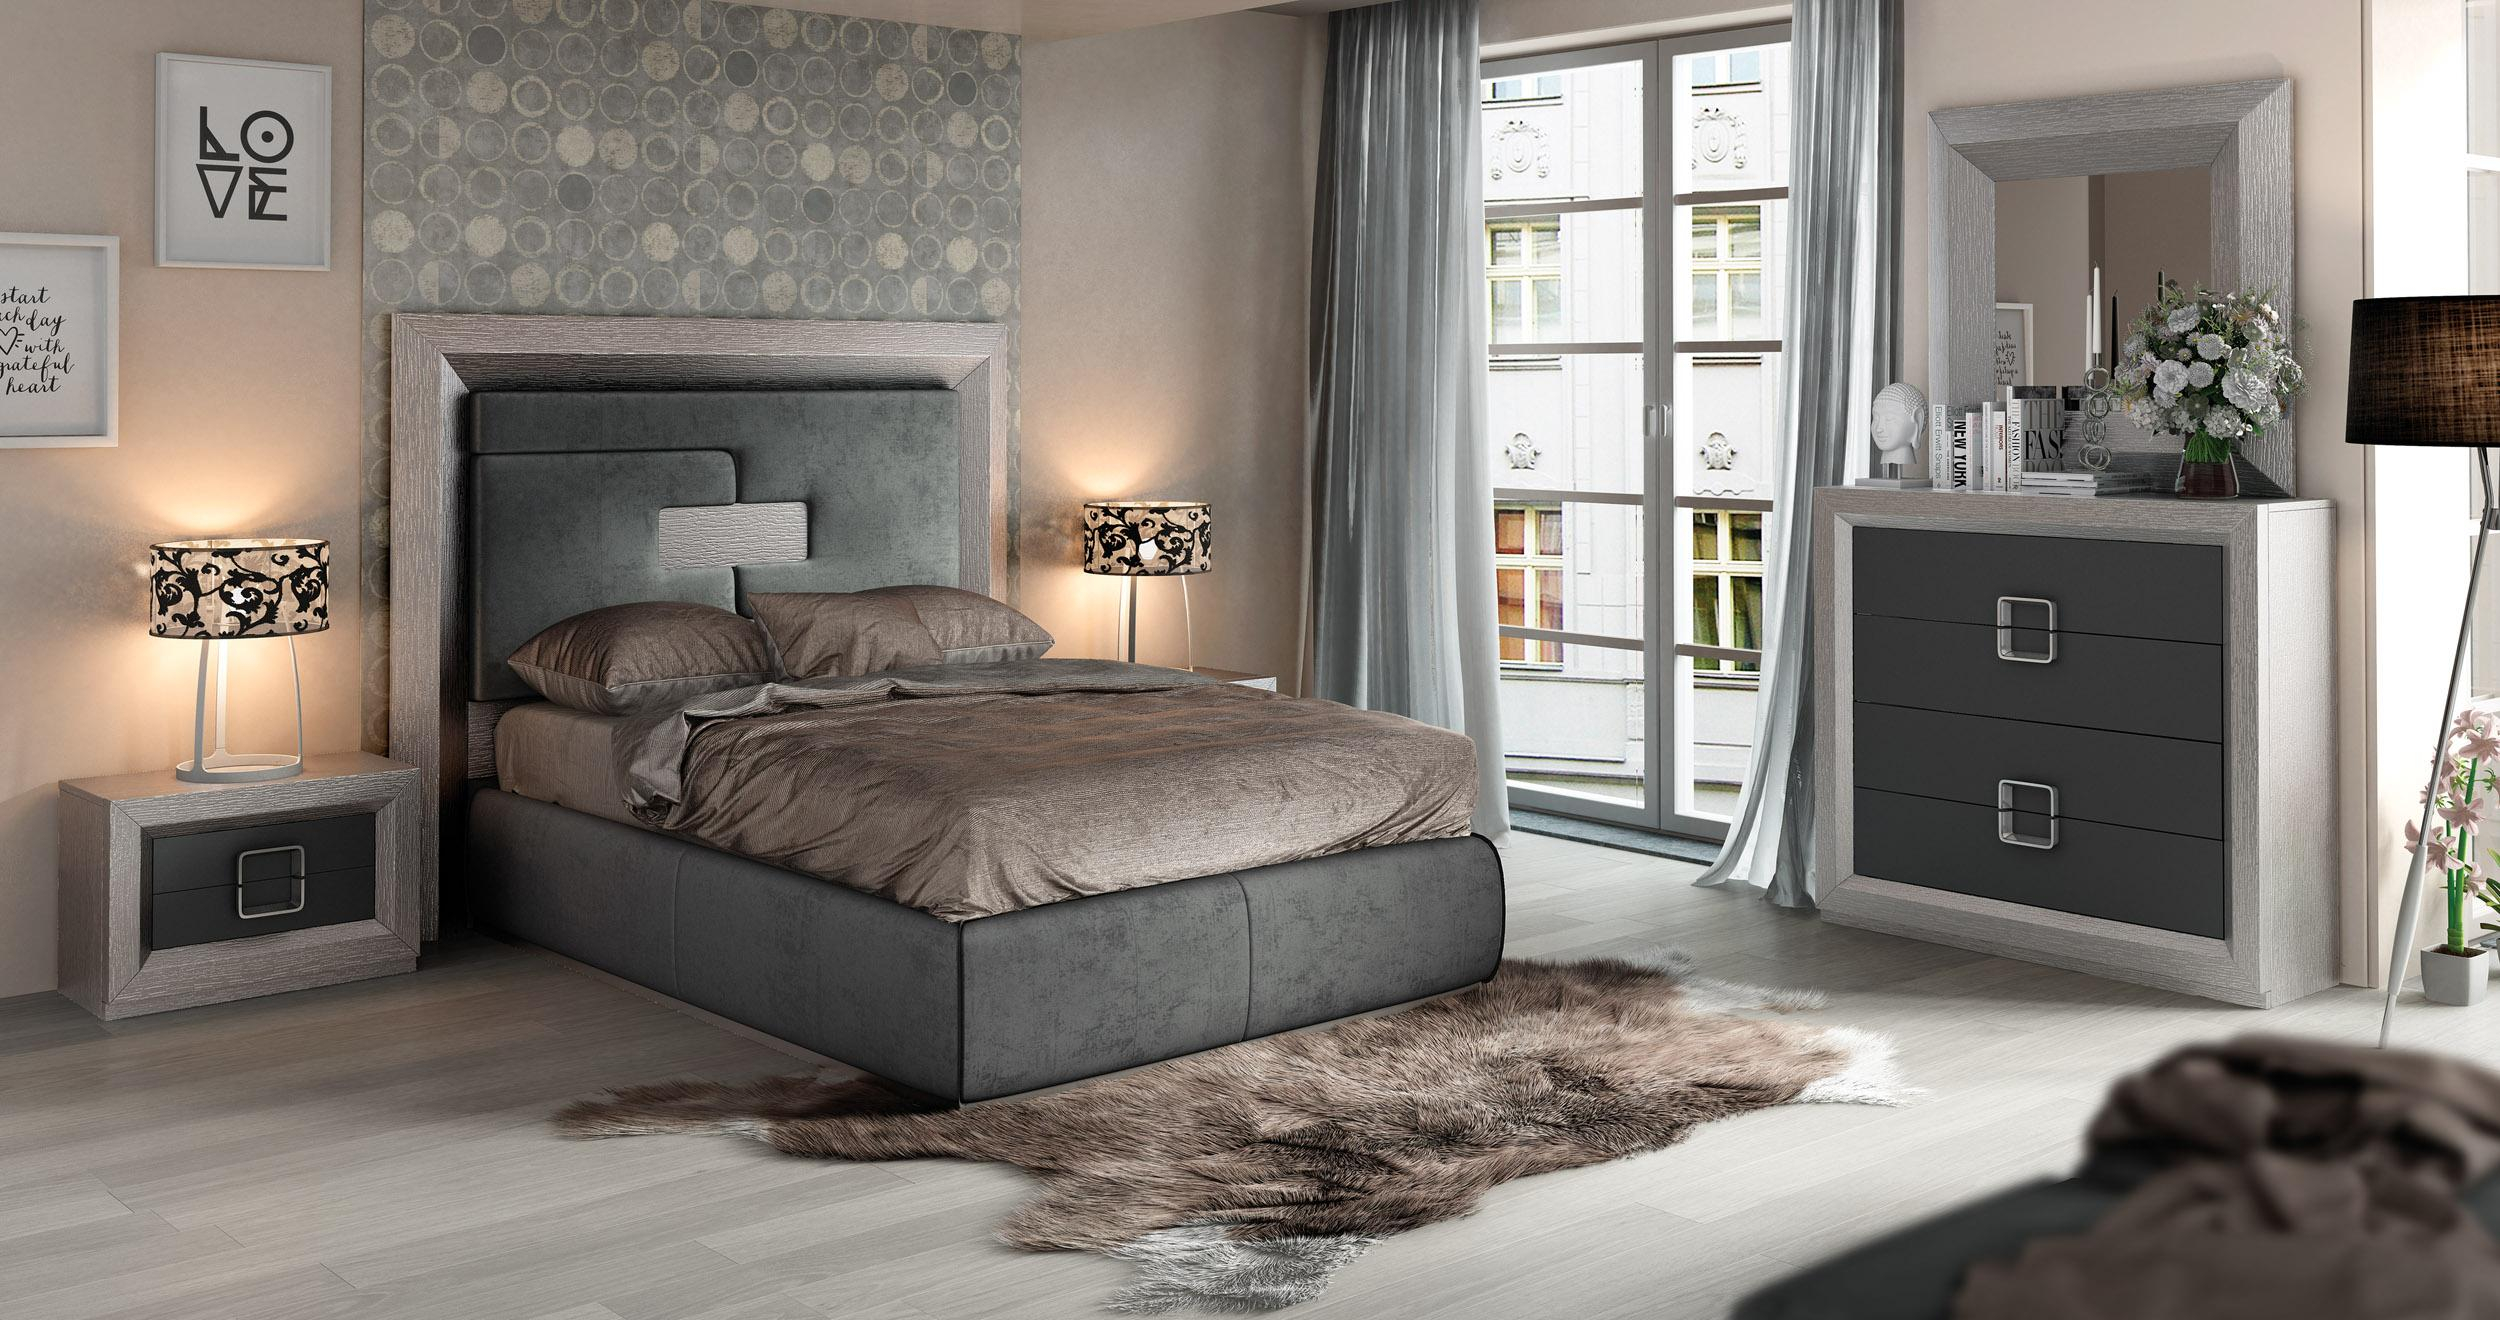 Made In Spain Quality Elite Modern Bedroom Sets With Extra Storage with regard to Modern Bedroom Suite